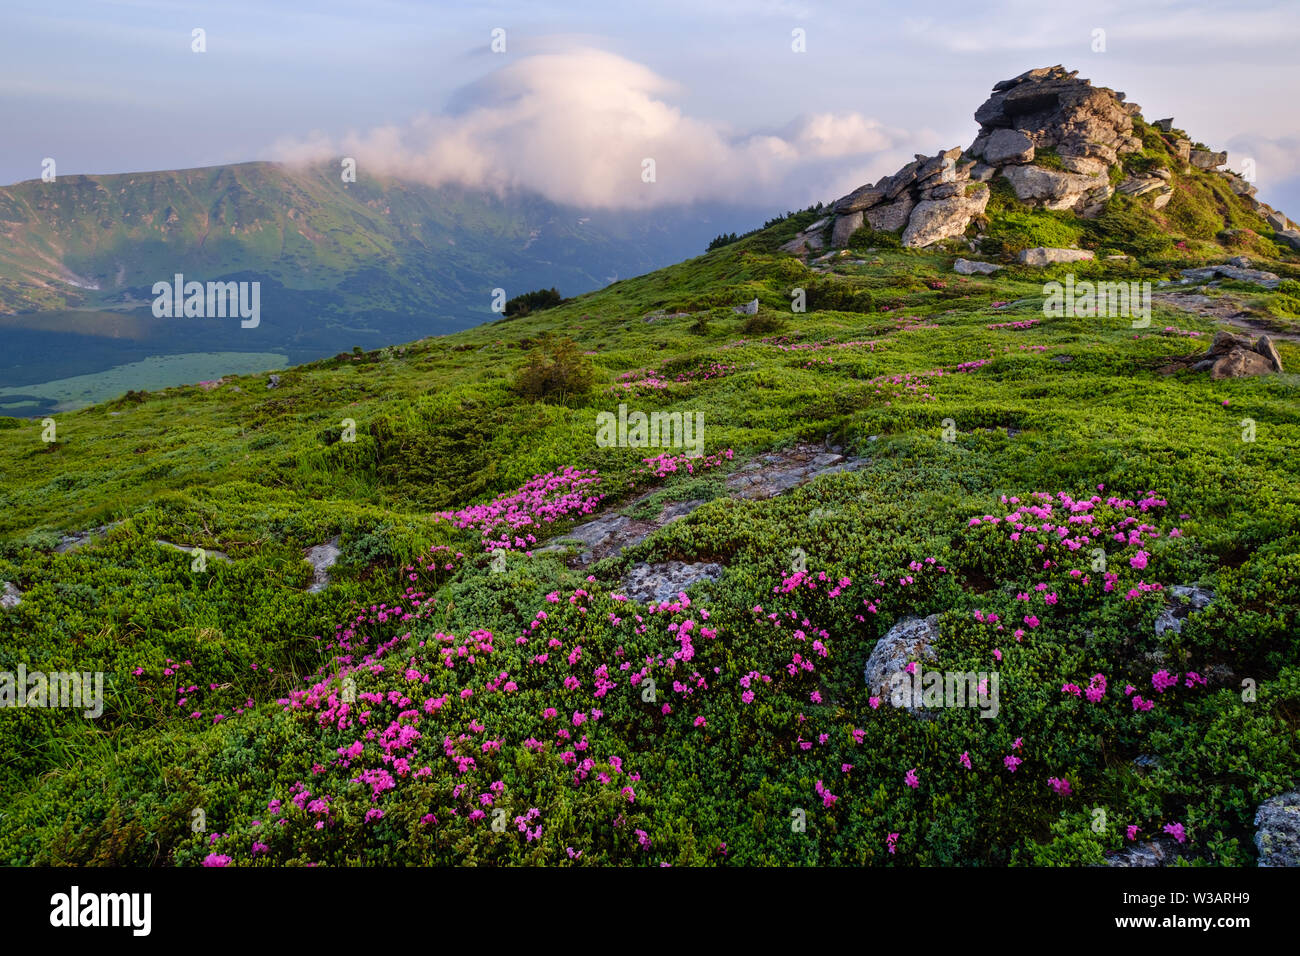 Pink rose rhododendron flowers on early morning summer misty mountain slope with clouds and fog. Carpathian, Ukraine. - Stock Image